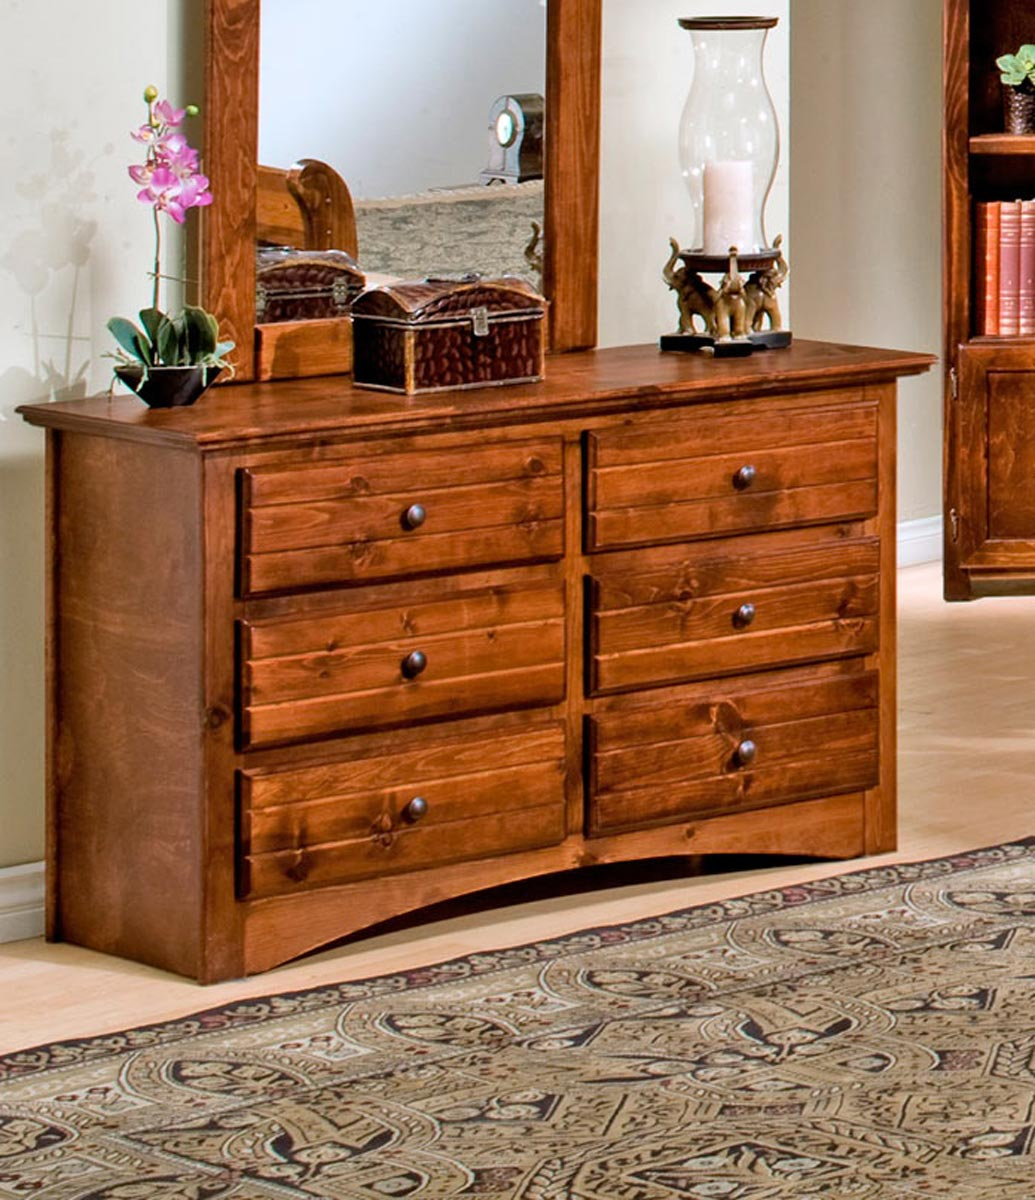 Chelsea Home 3524470-C 6 Drawer Dresser - Cocoa